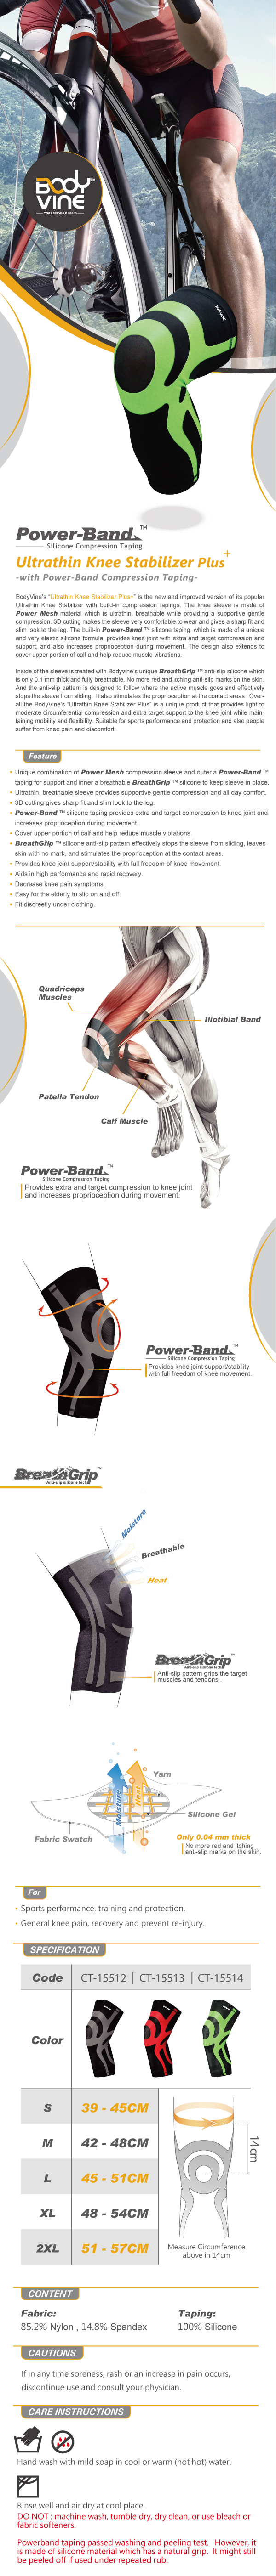 Ultrathin-Knee-Stabilizer-Plus_Power-Band-Compression-Taping